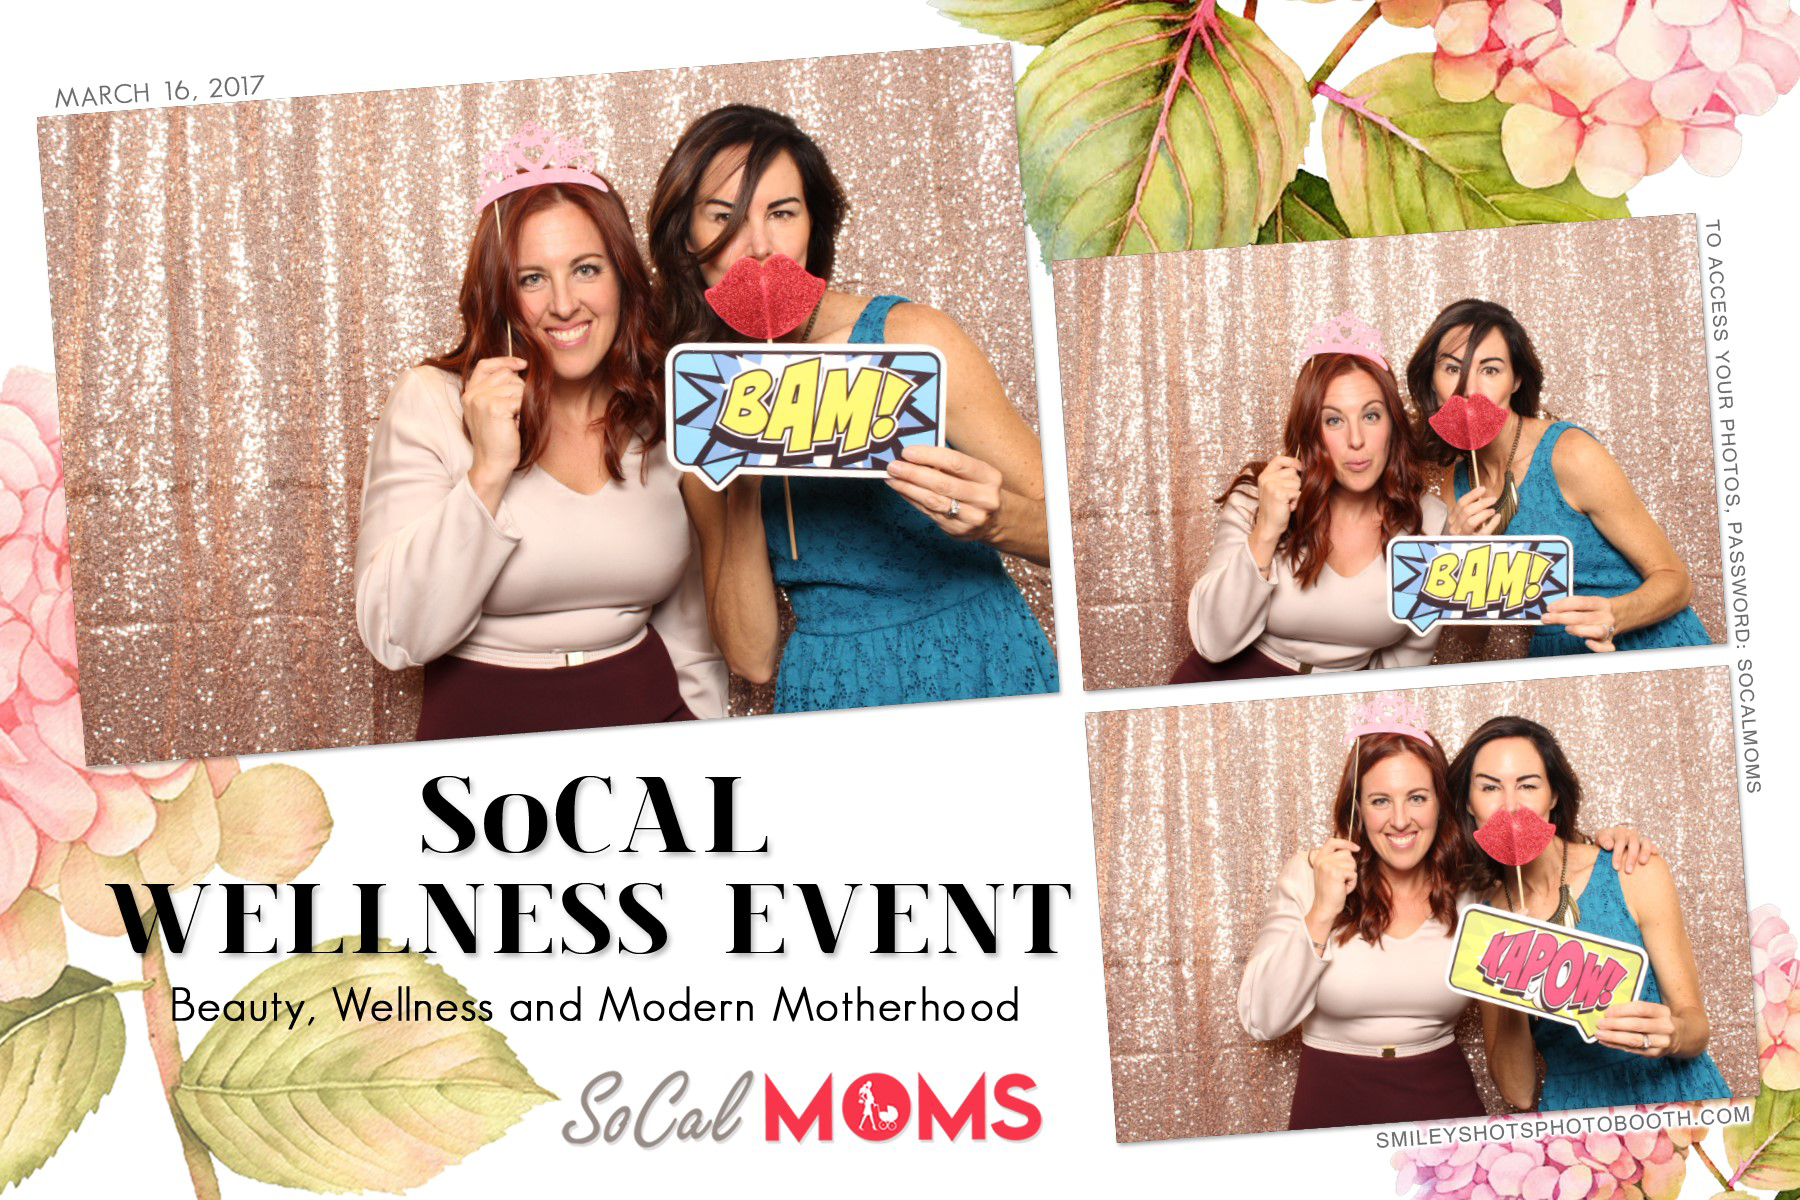 Socal Wellness Event Socal Moms Smiley Shots Photo Booth Photobooth (5).png